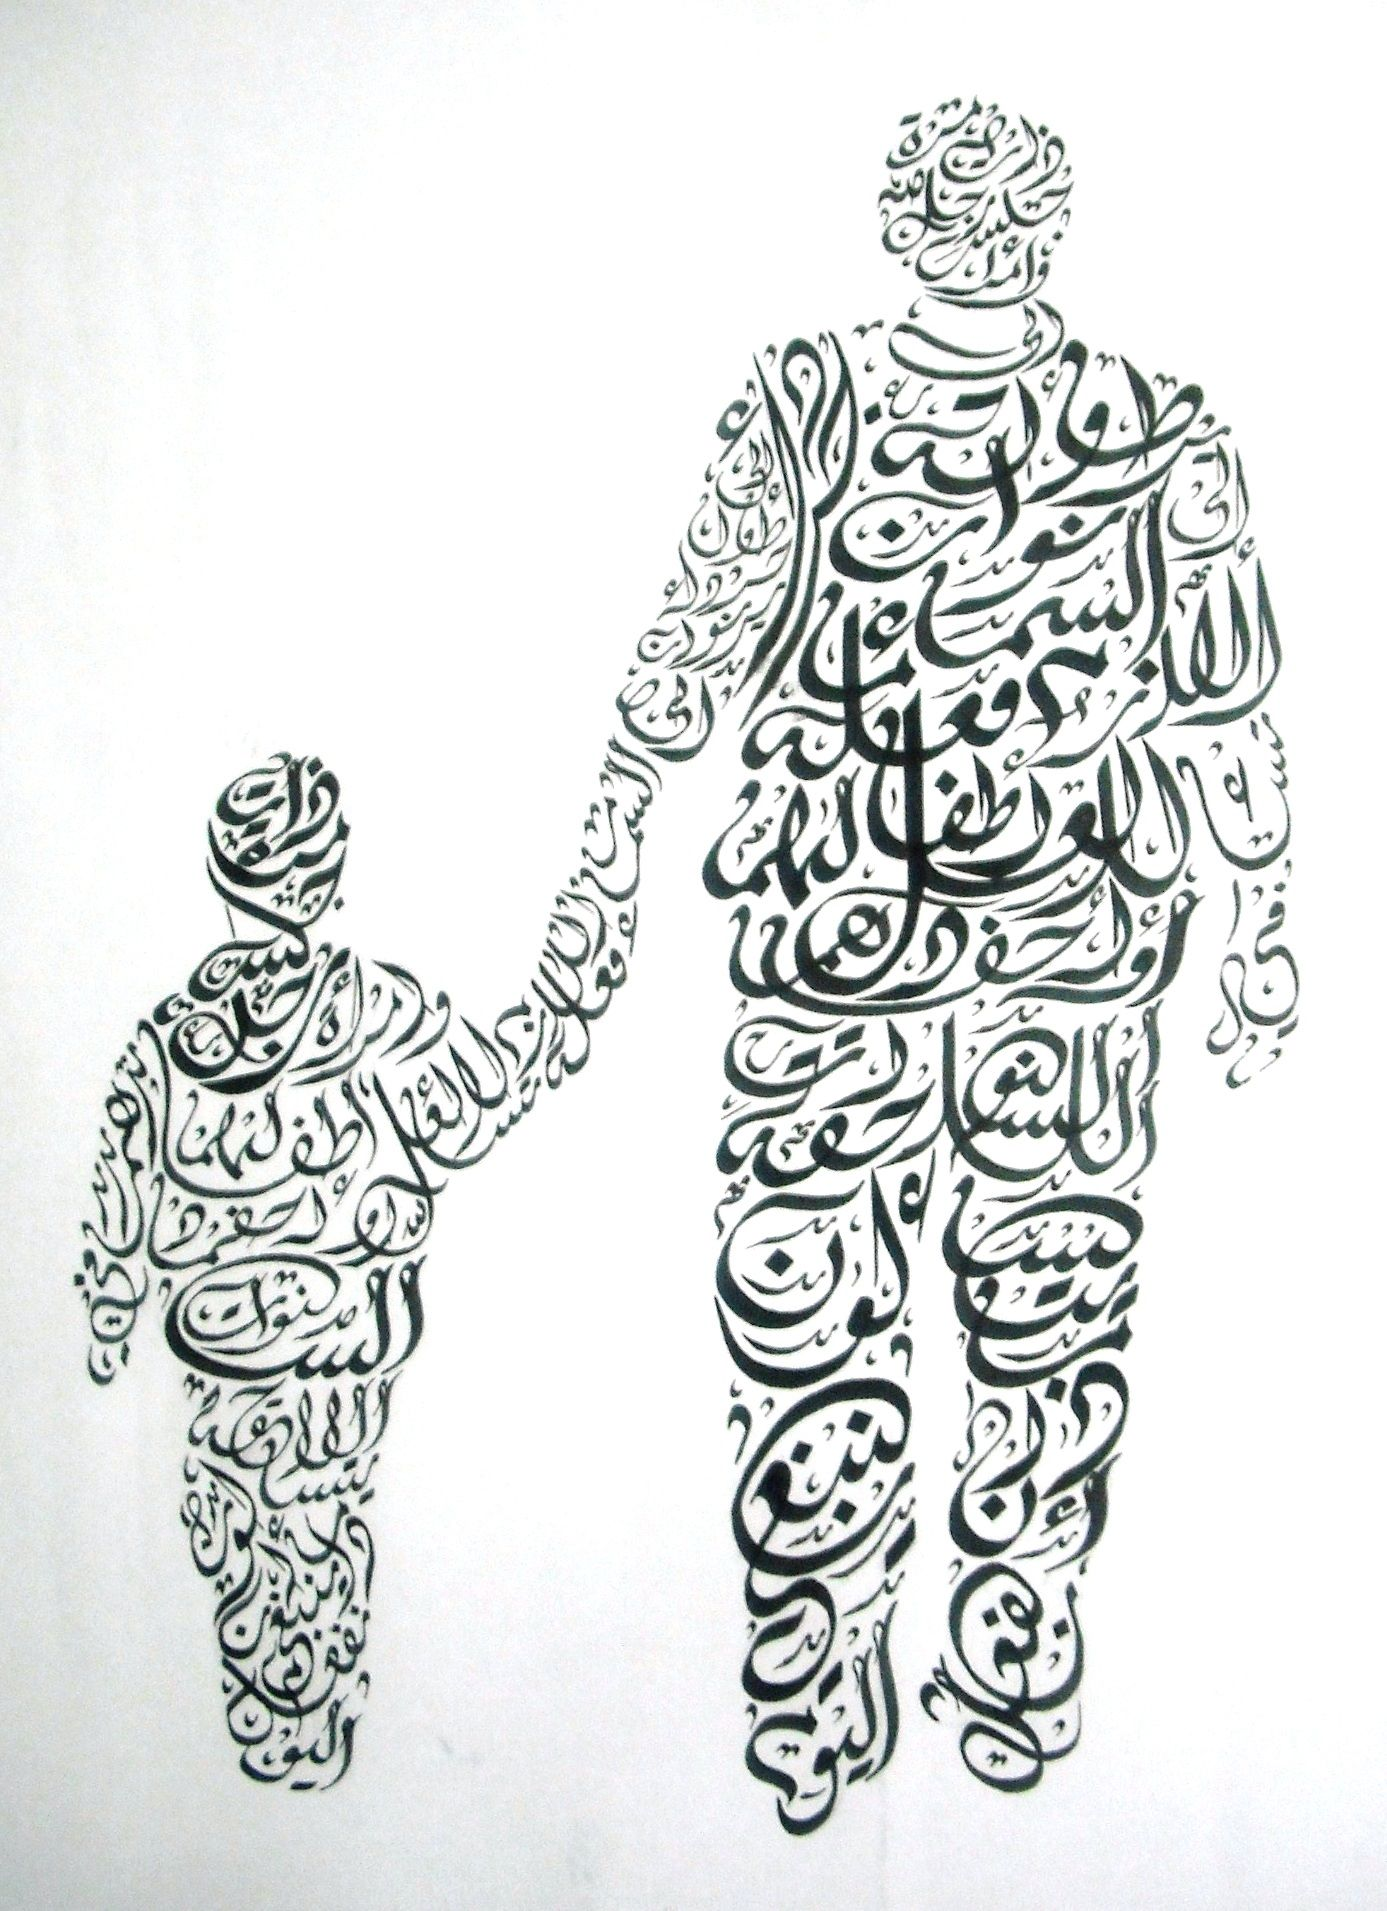 this is an arabic calligraphy writing form called 'diwani